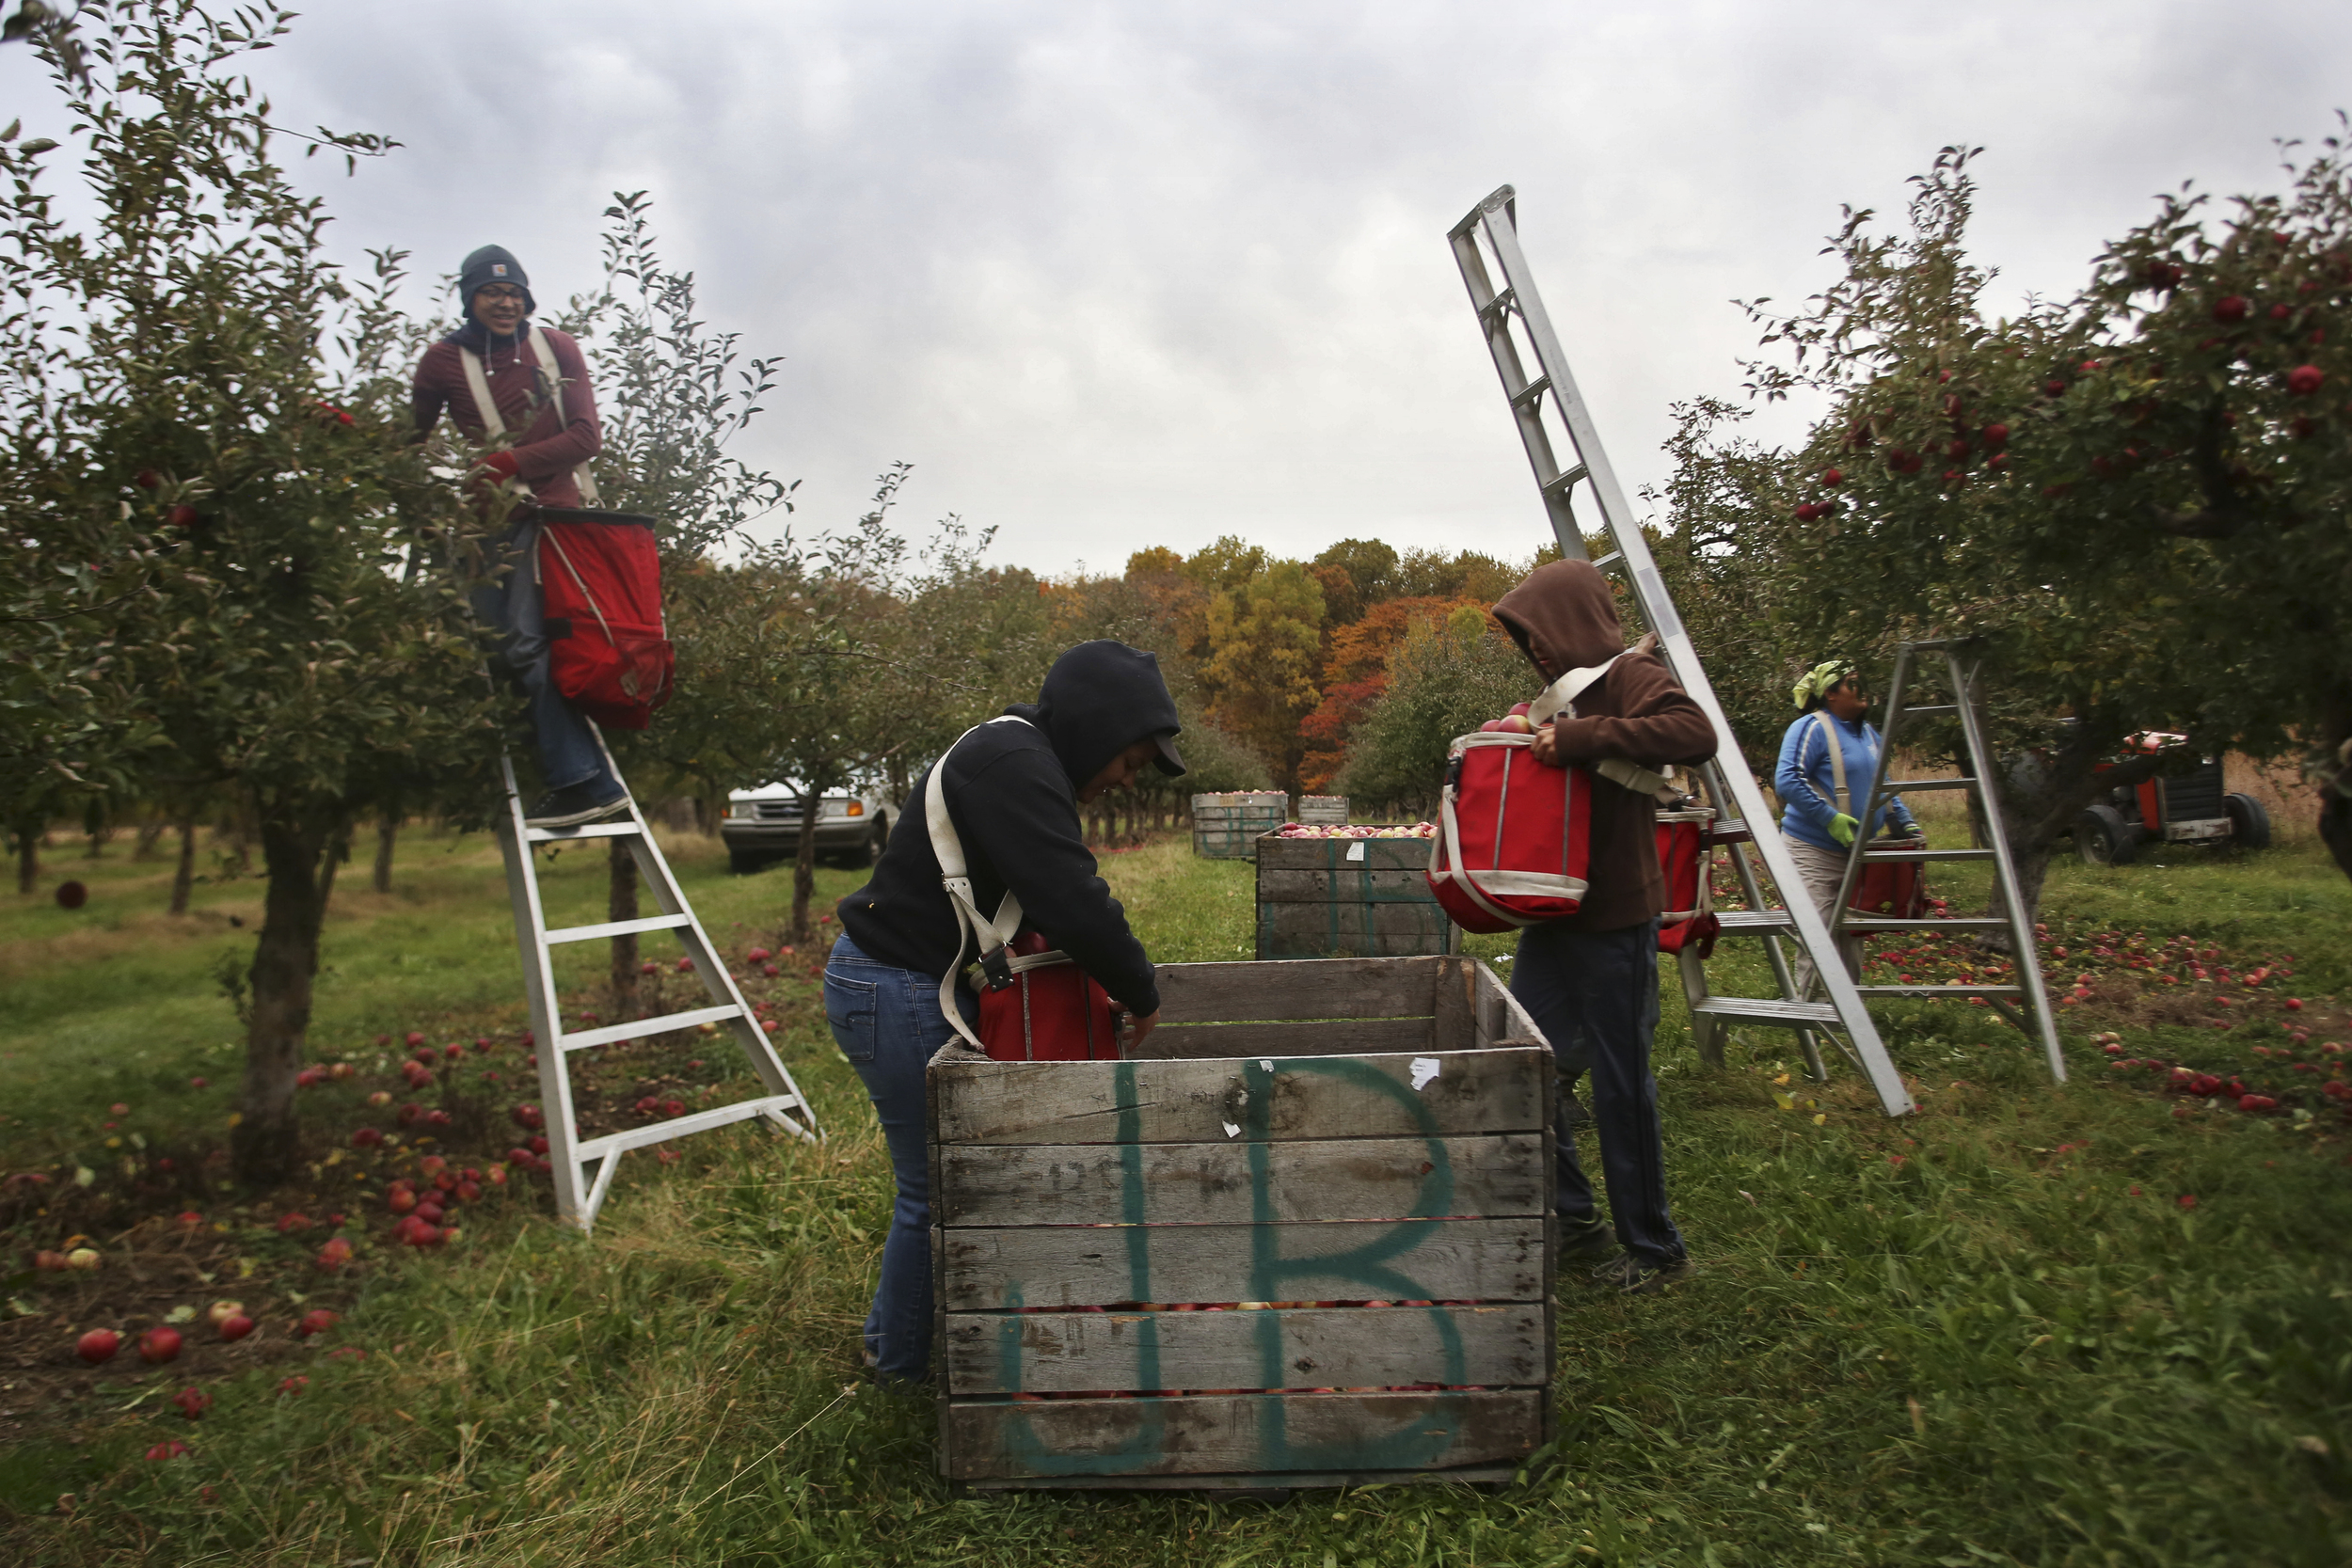 The Jurado family works seven days a week during apple harvesting season picking apples at Uncle John's Cider Mill. The children, as young as 13 years old, pick apples every day after school until dark,while the parents pick all day.